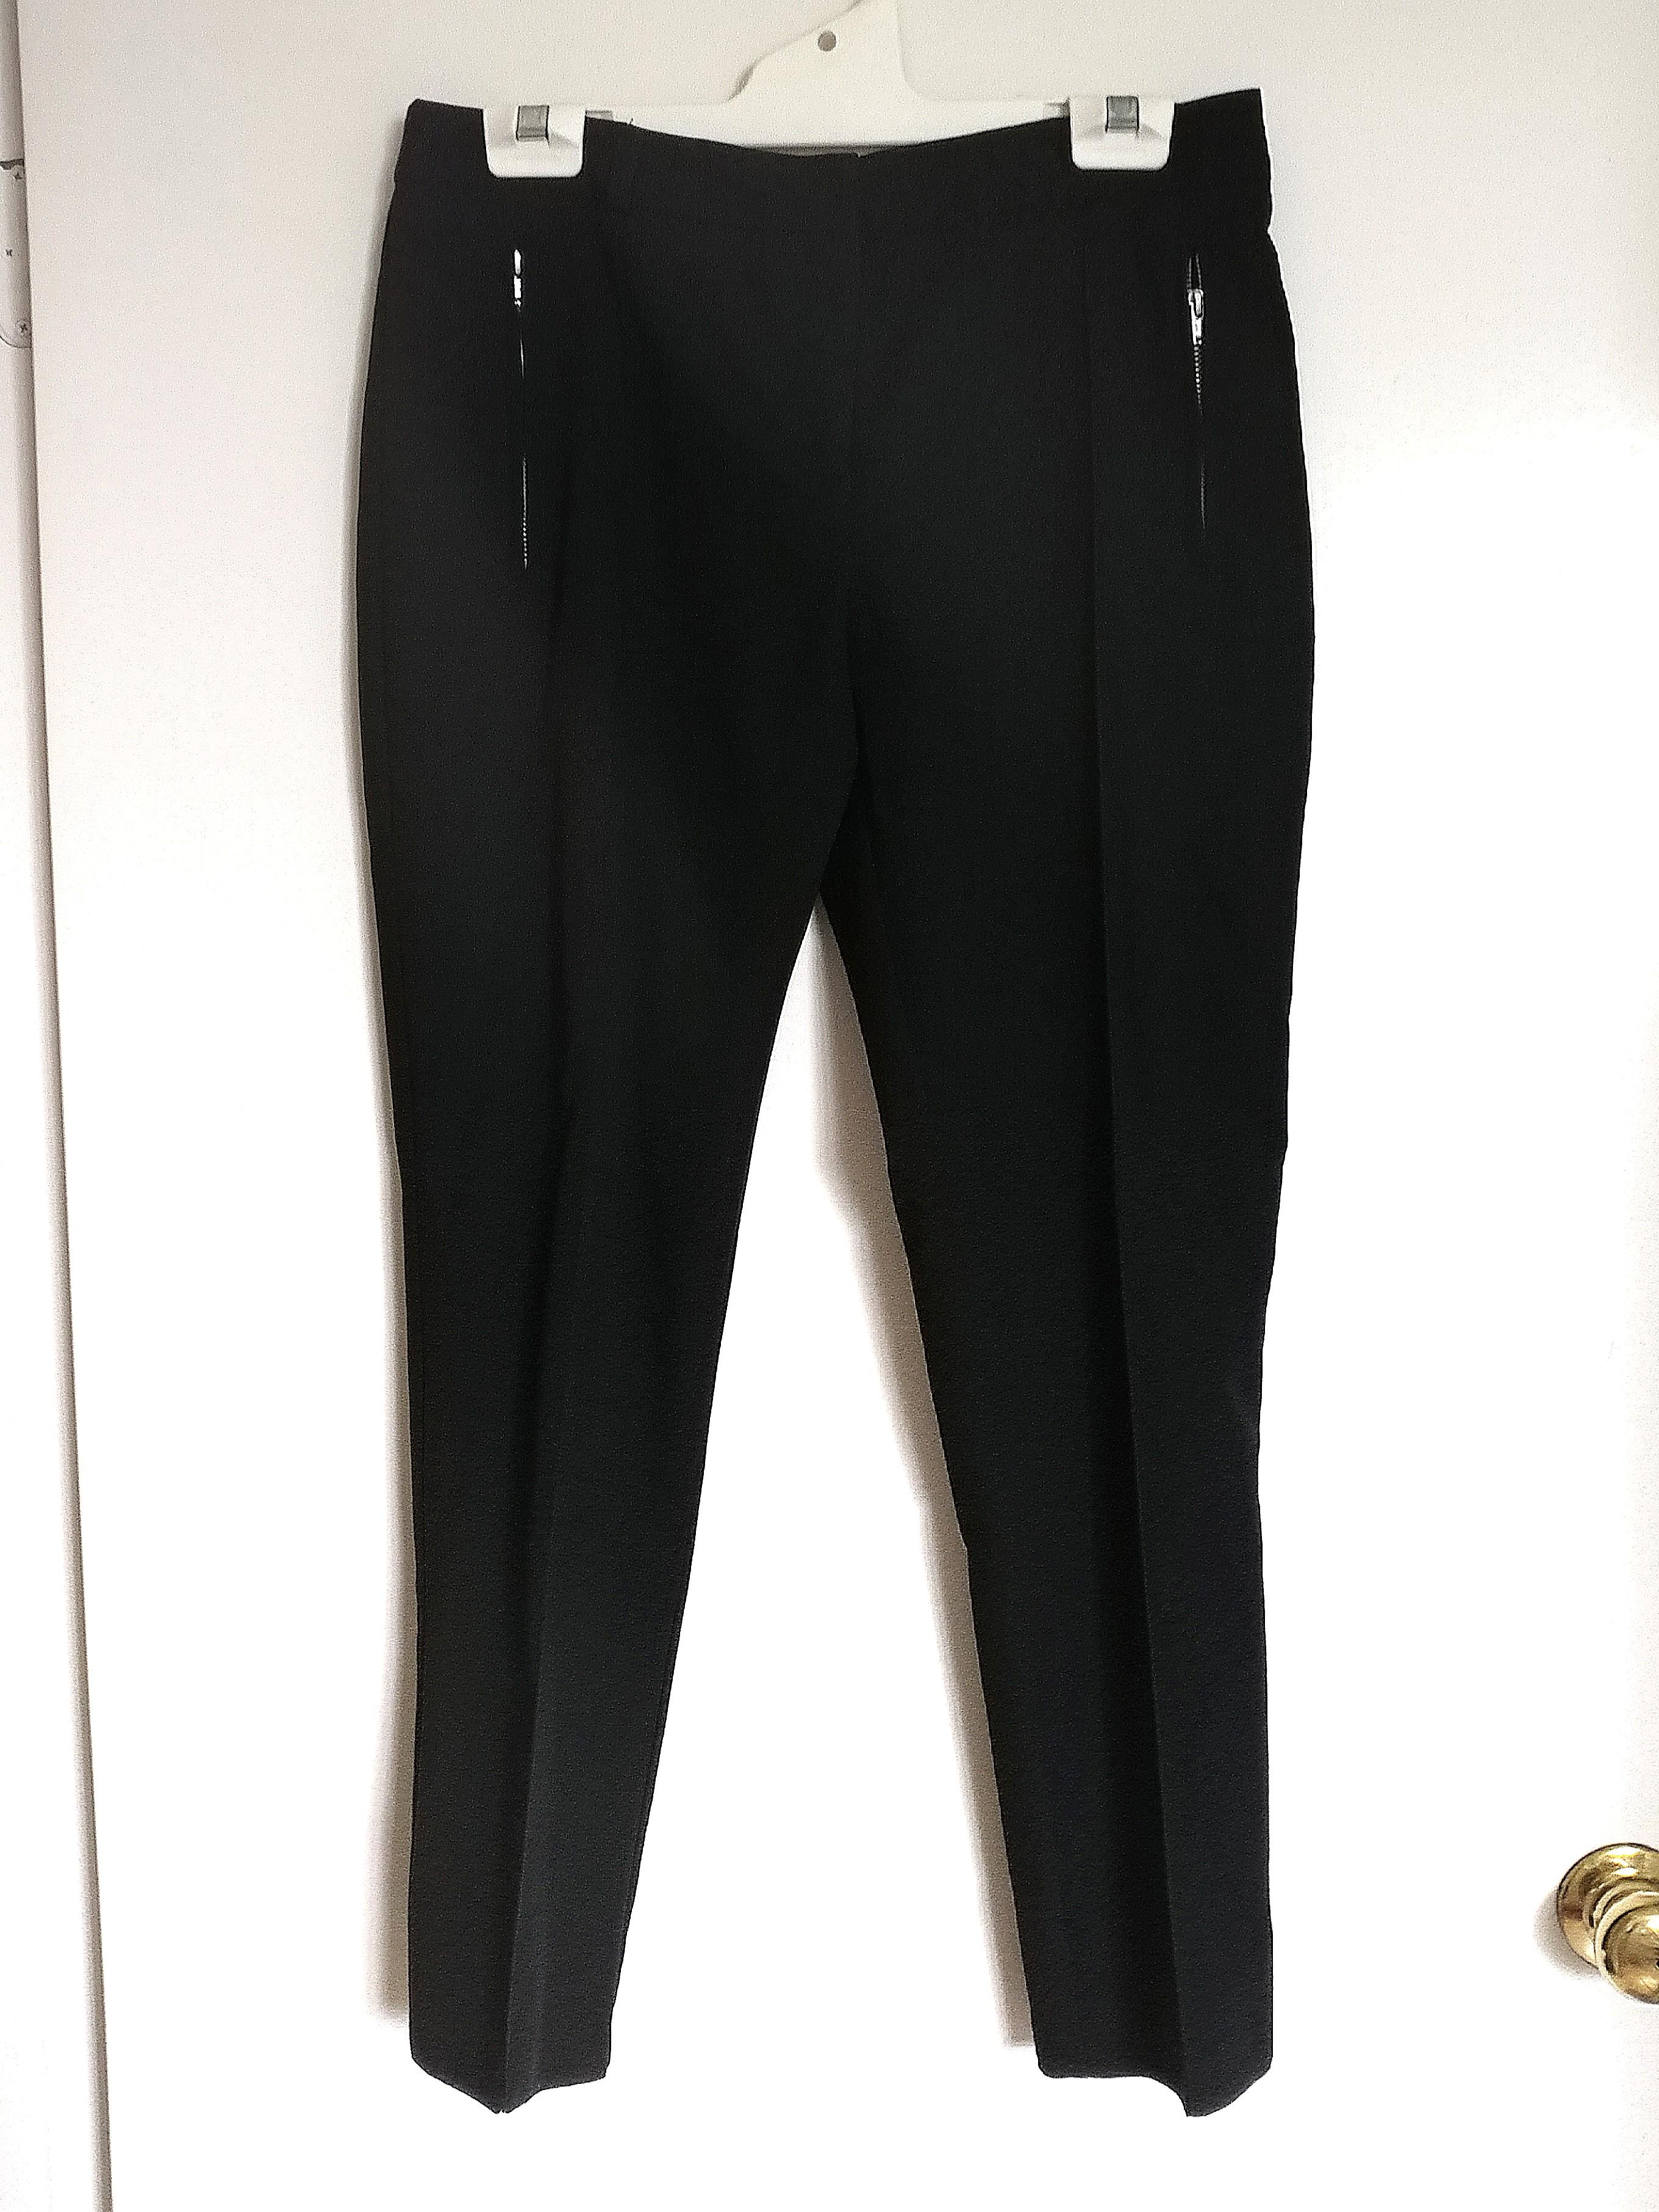 ASOS Black Office Pants with Silver Zip Pockets AU10